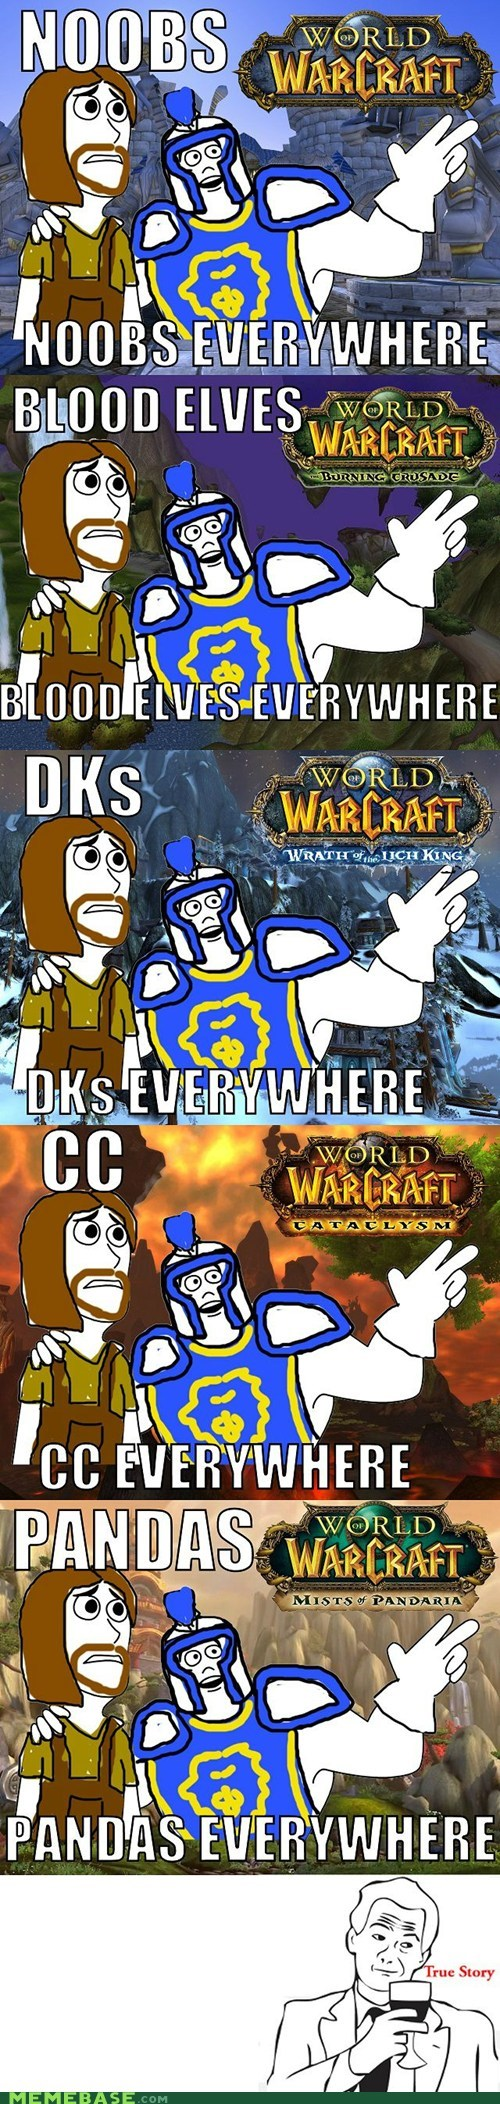 expansions meme noobs PC true story video games world or warcraft - 6345222144